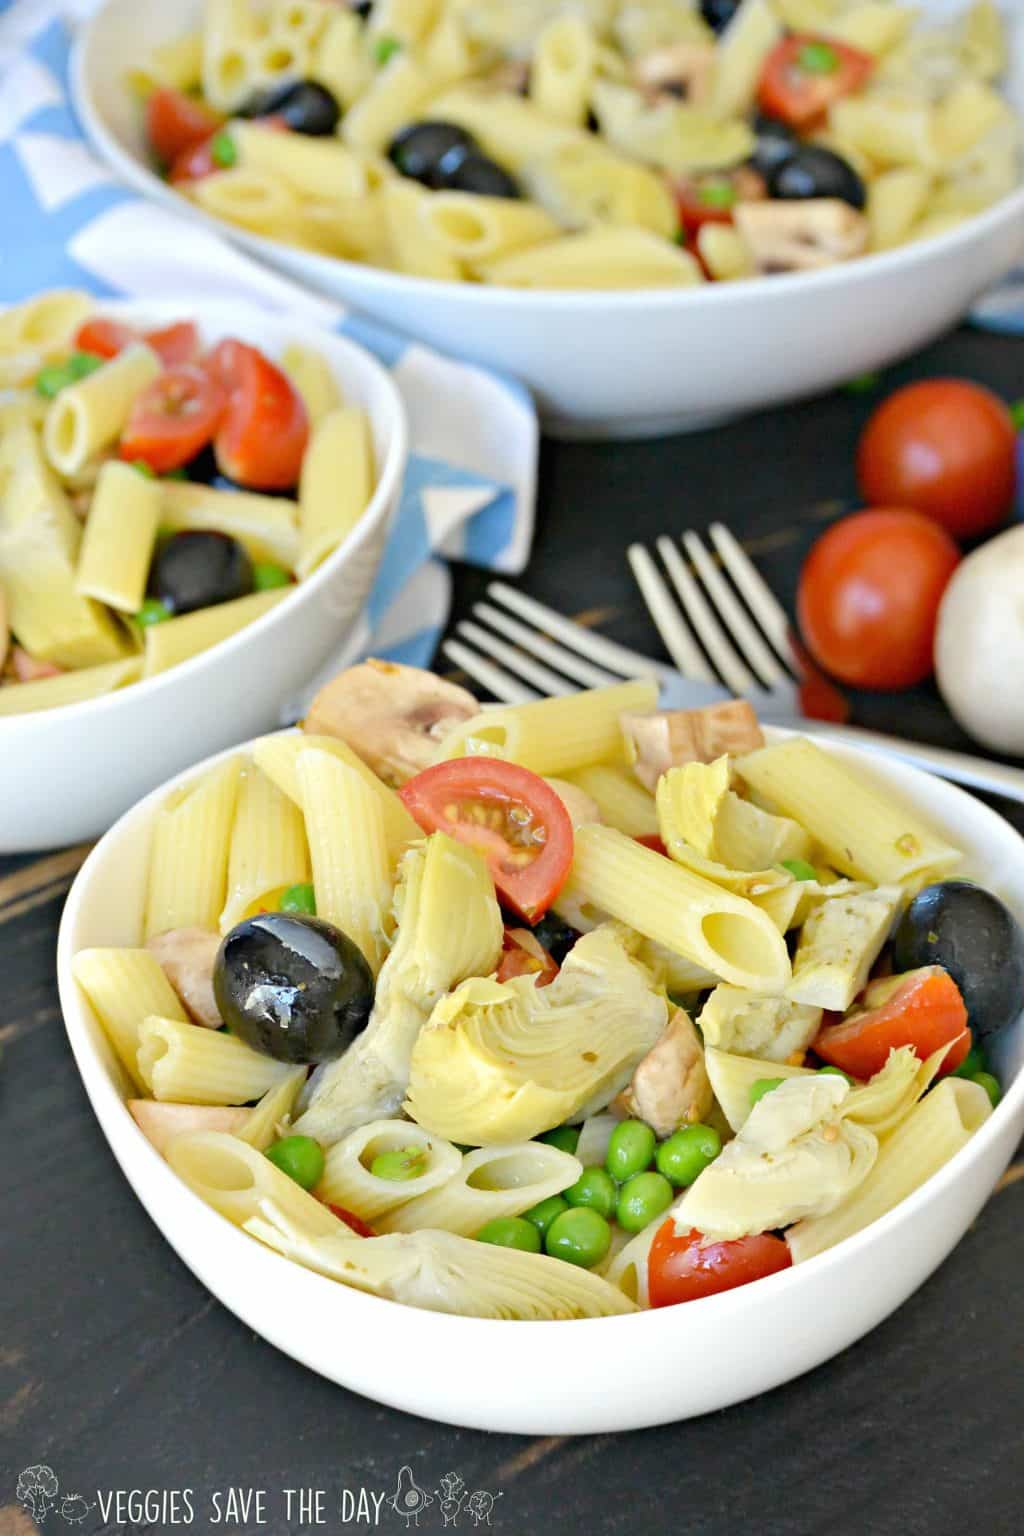 Pasta salad with gluten-free penne pasta, marinated artichoke hearts, peas, mushrooms, cherry tomatoes, and black olives.